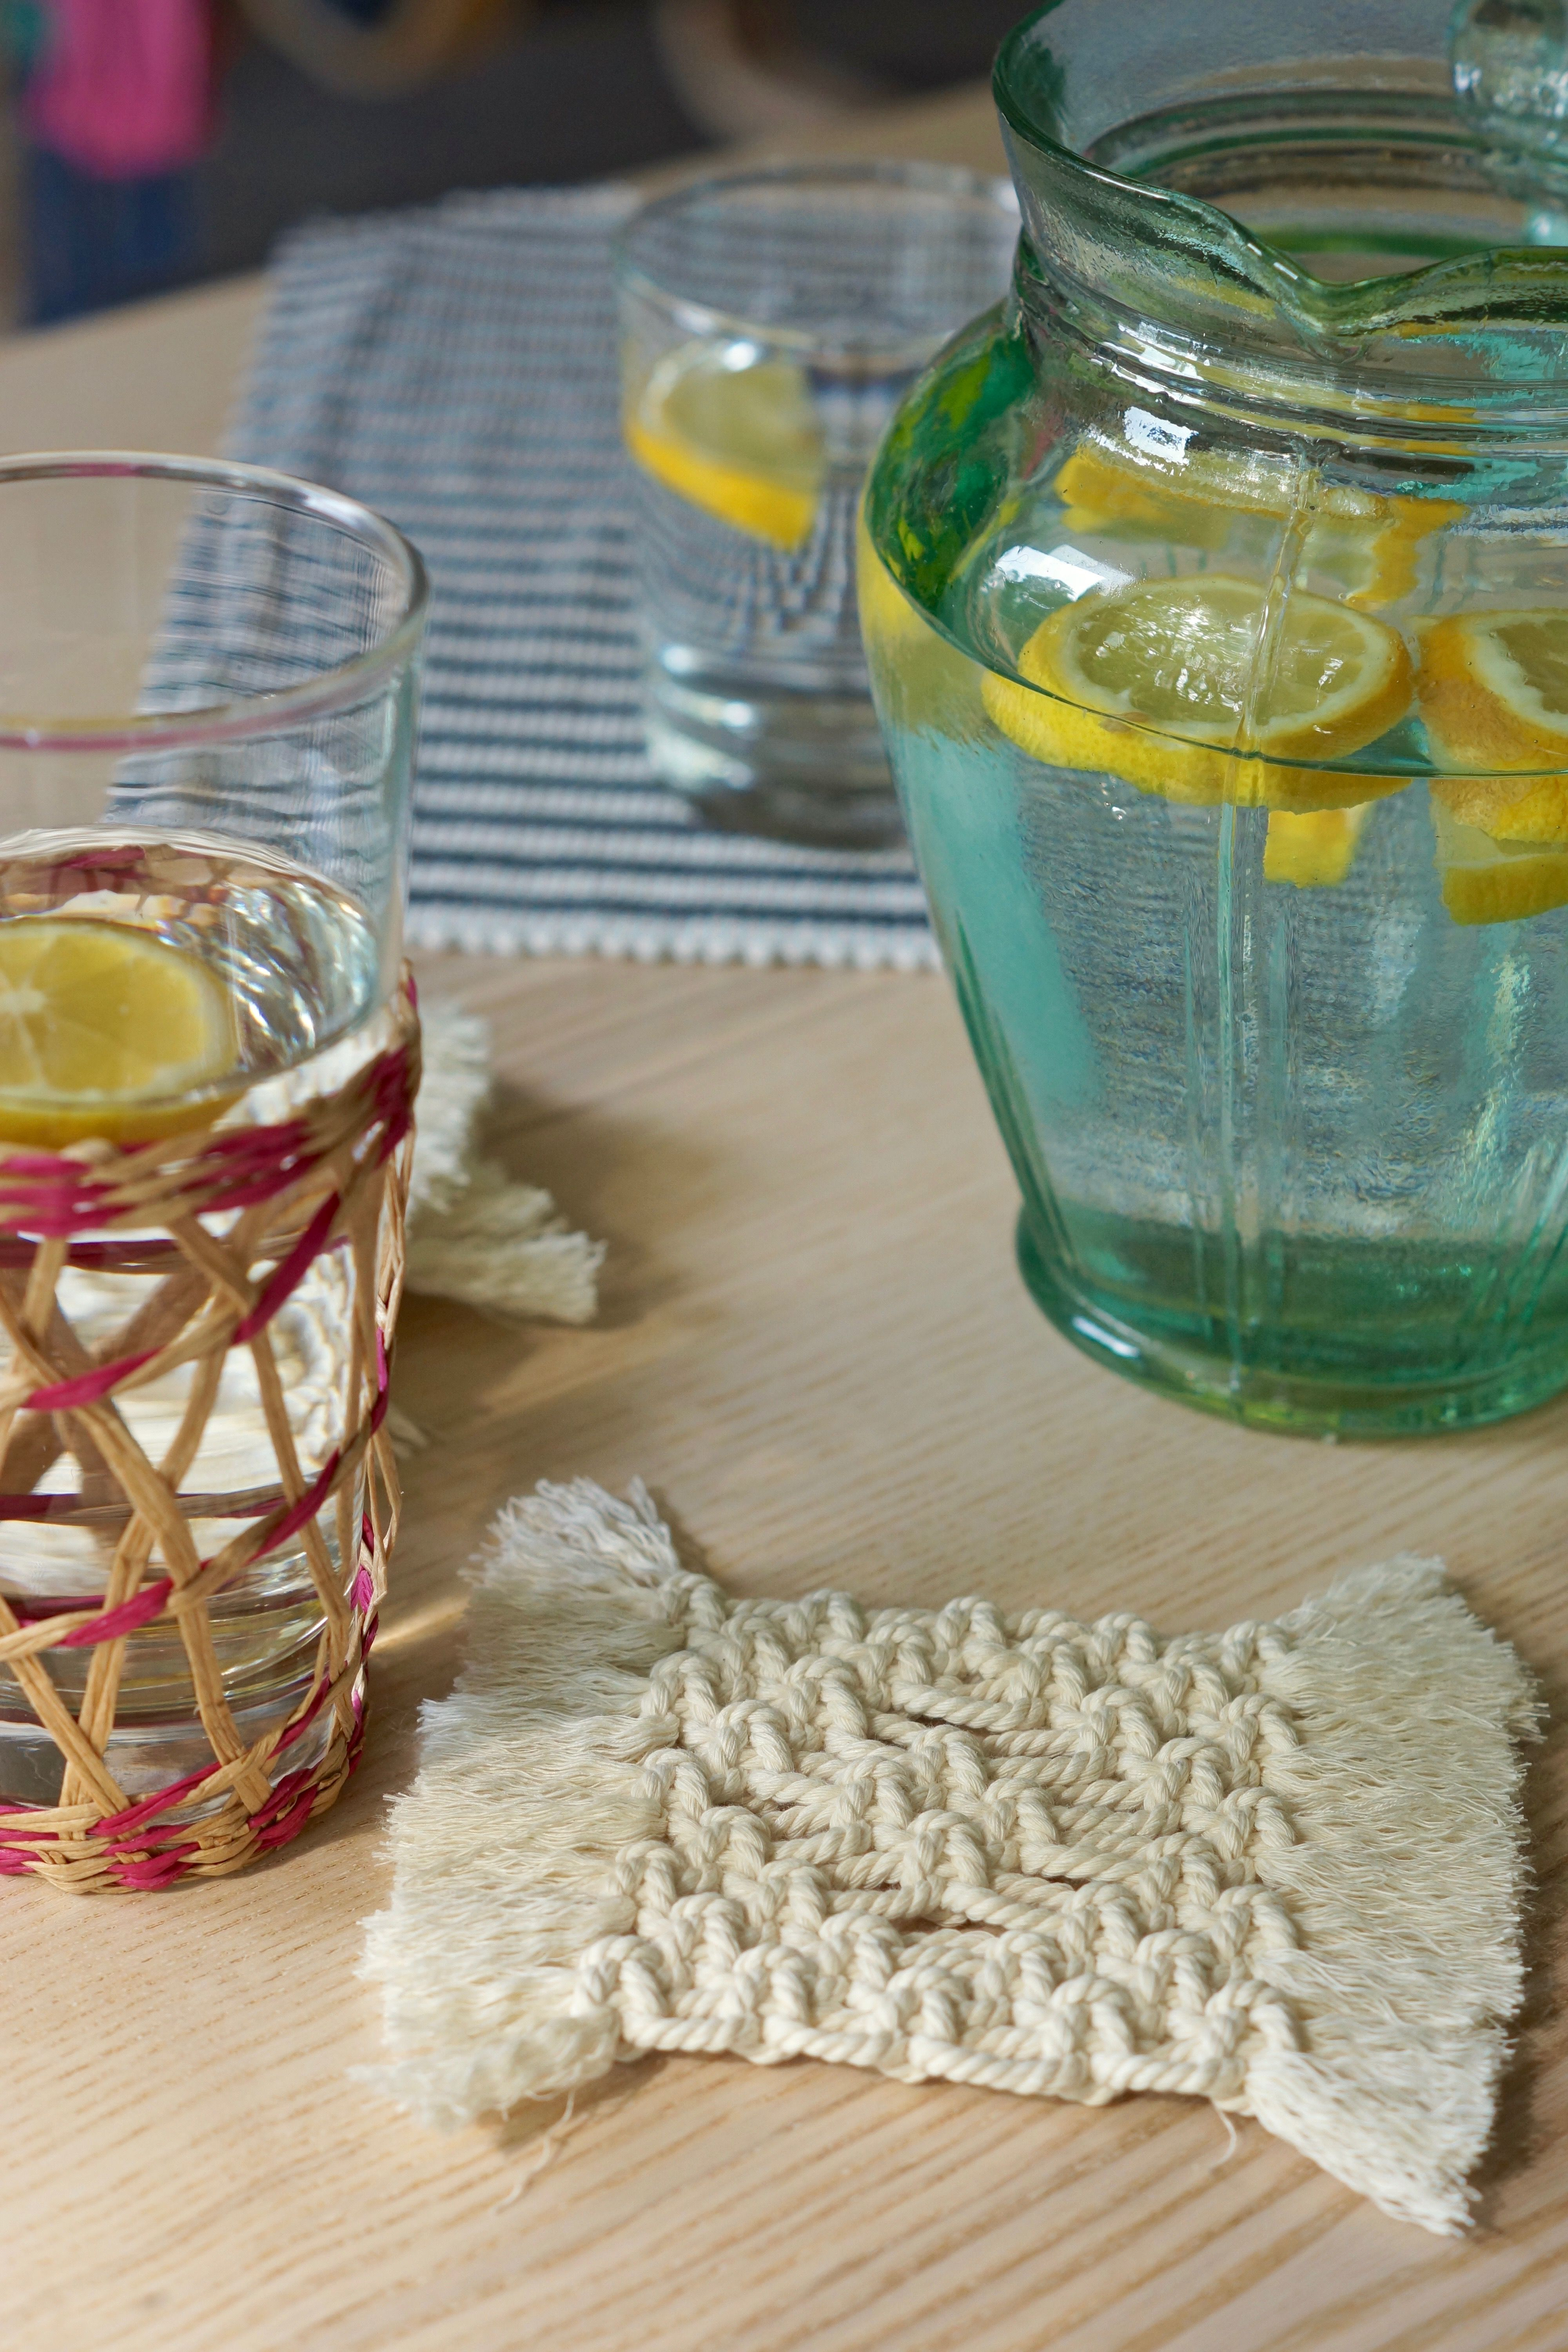 Detox water Boho summer vibes with macrame coasters from